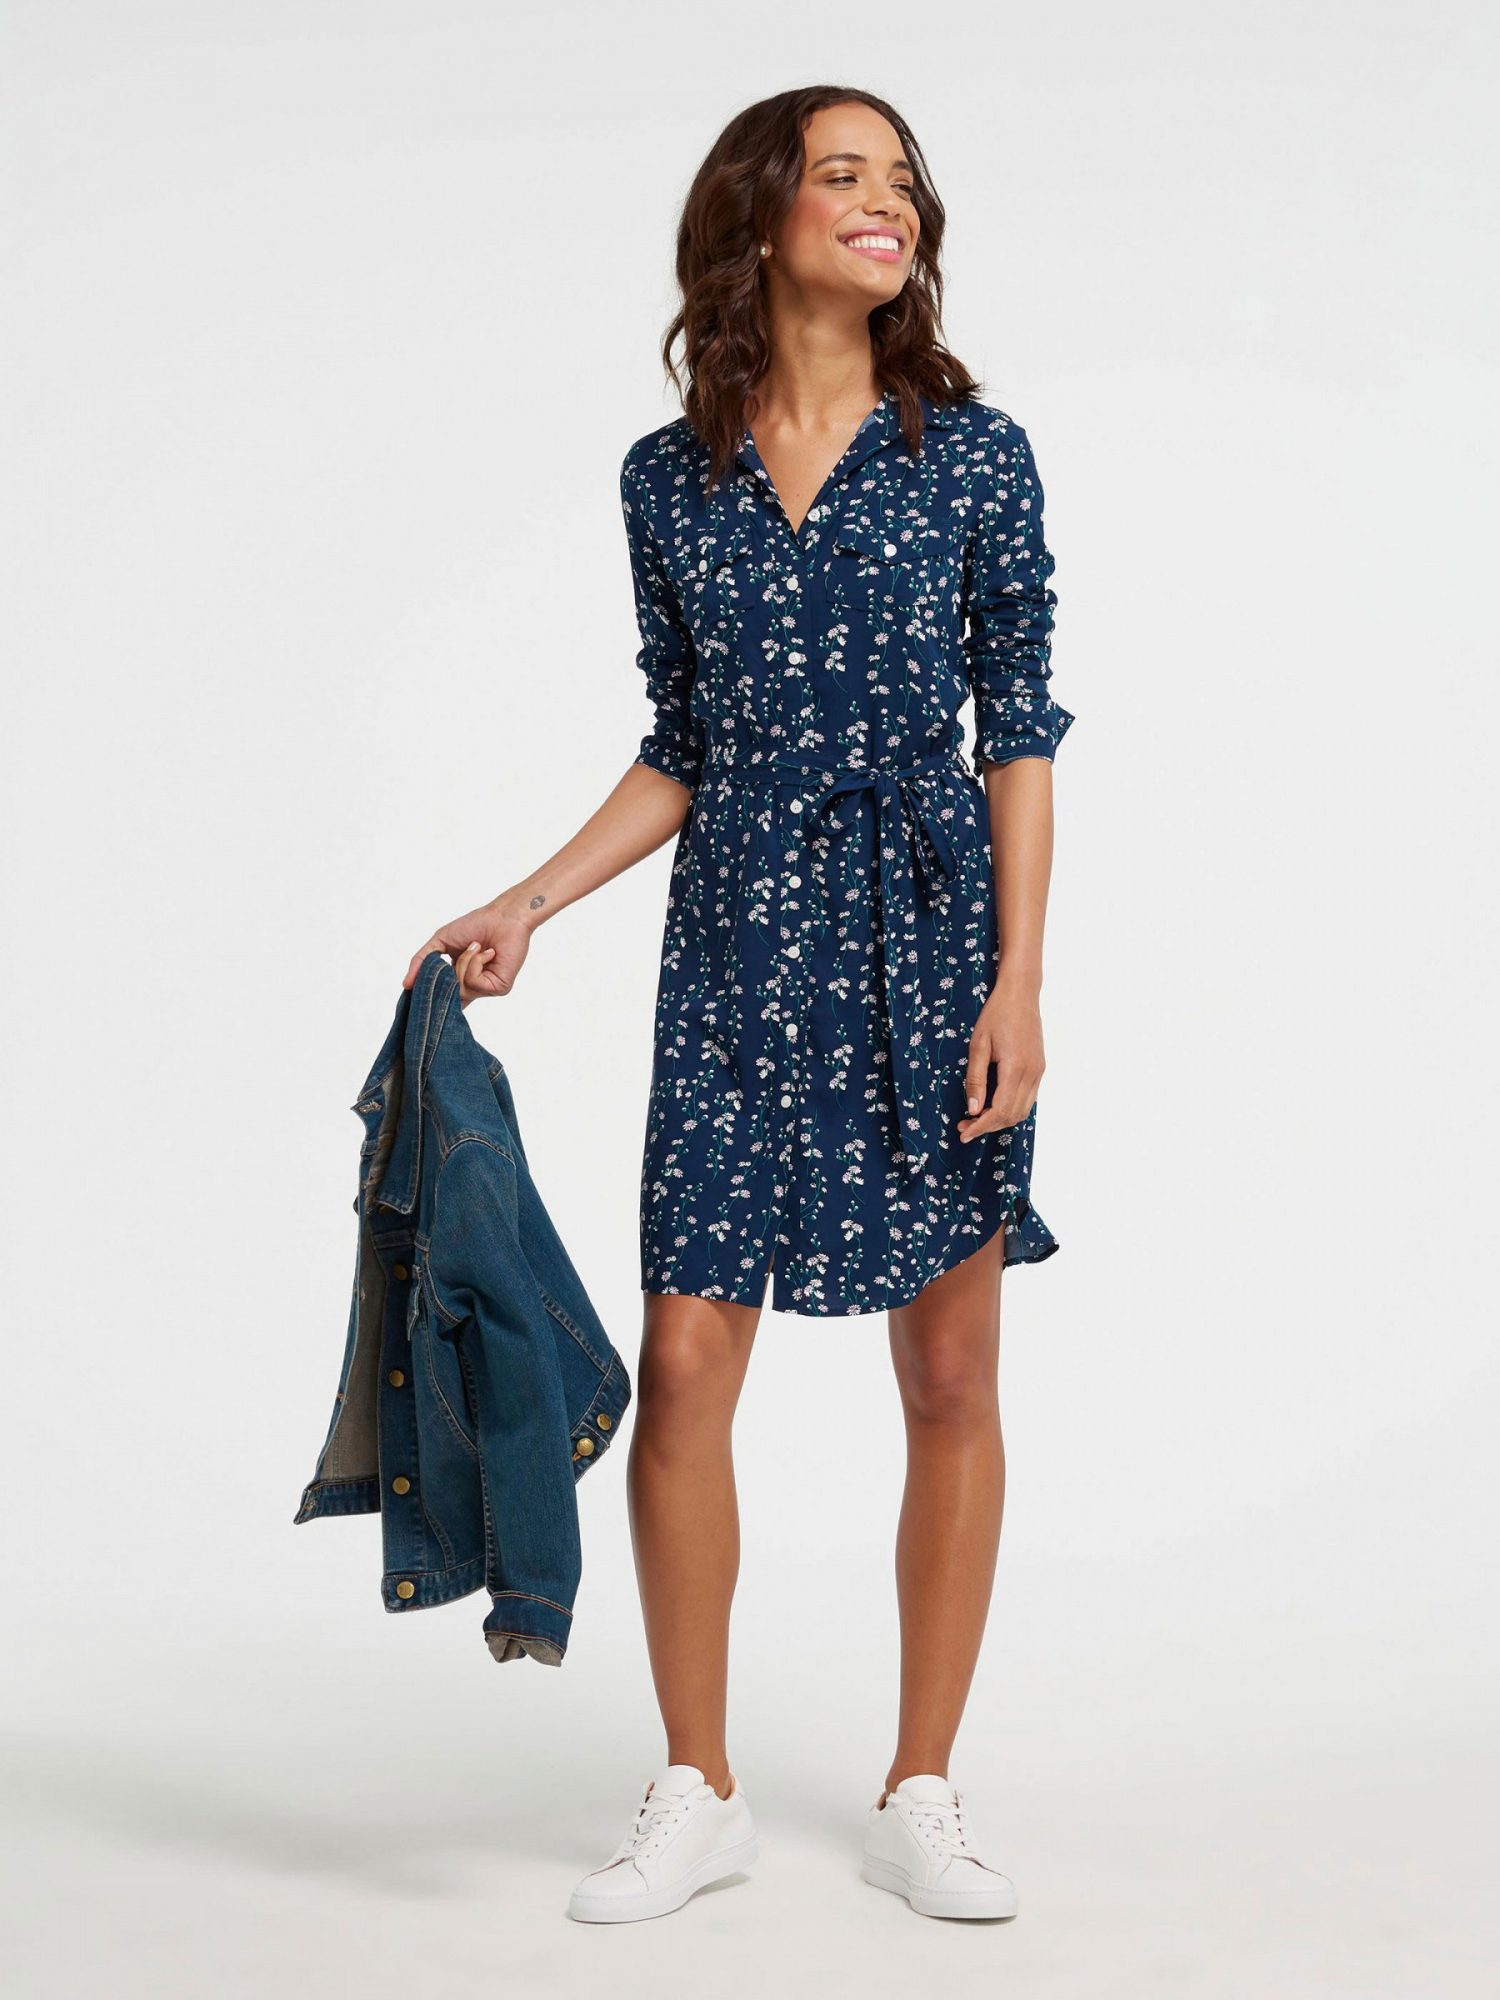 The $98 Draper James Dress You Absolutely Need From Reese